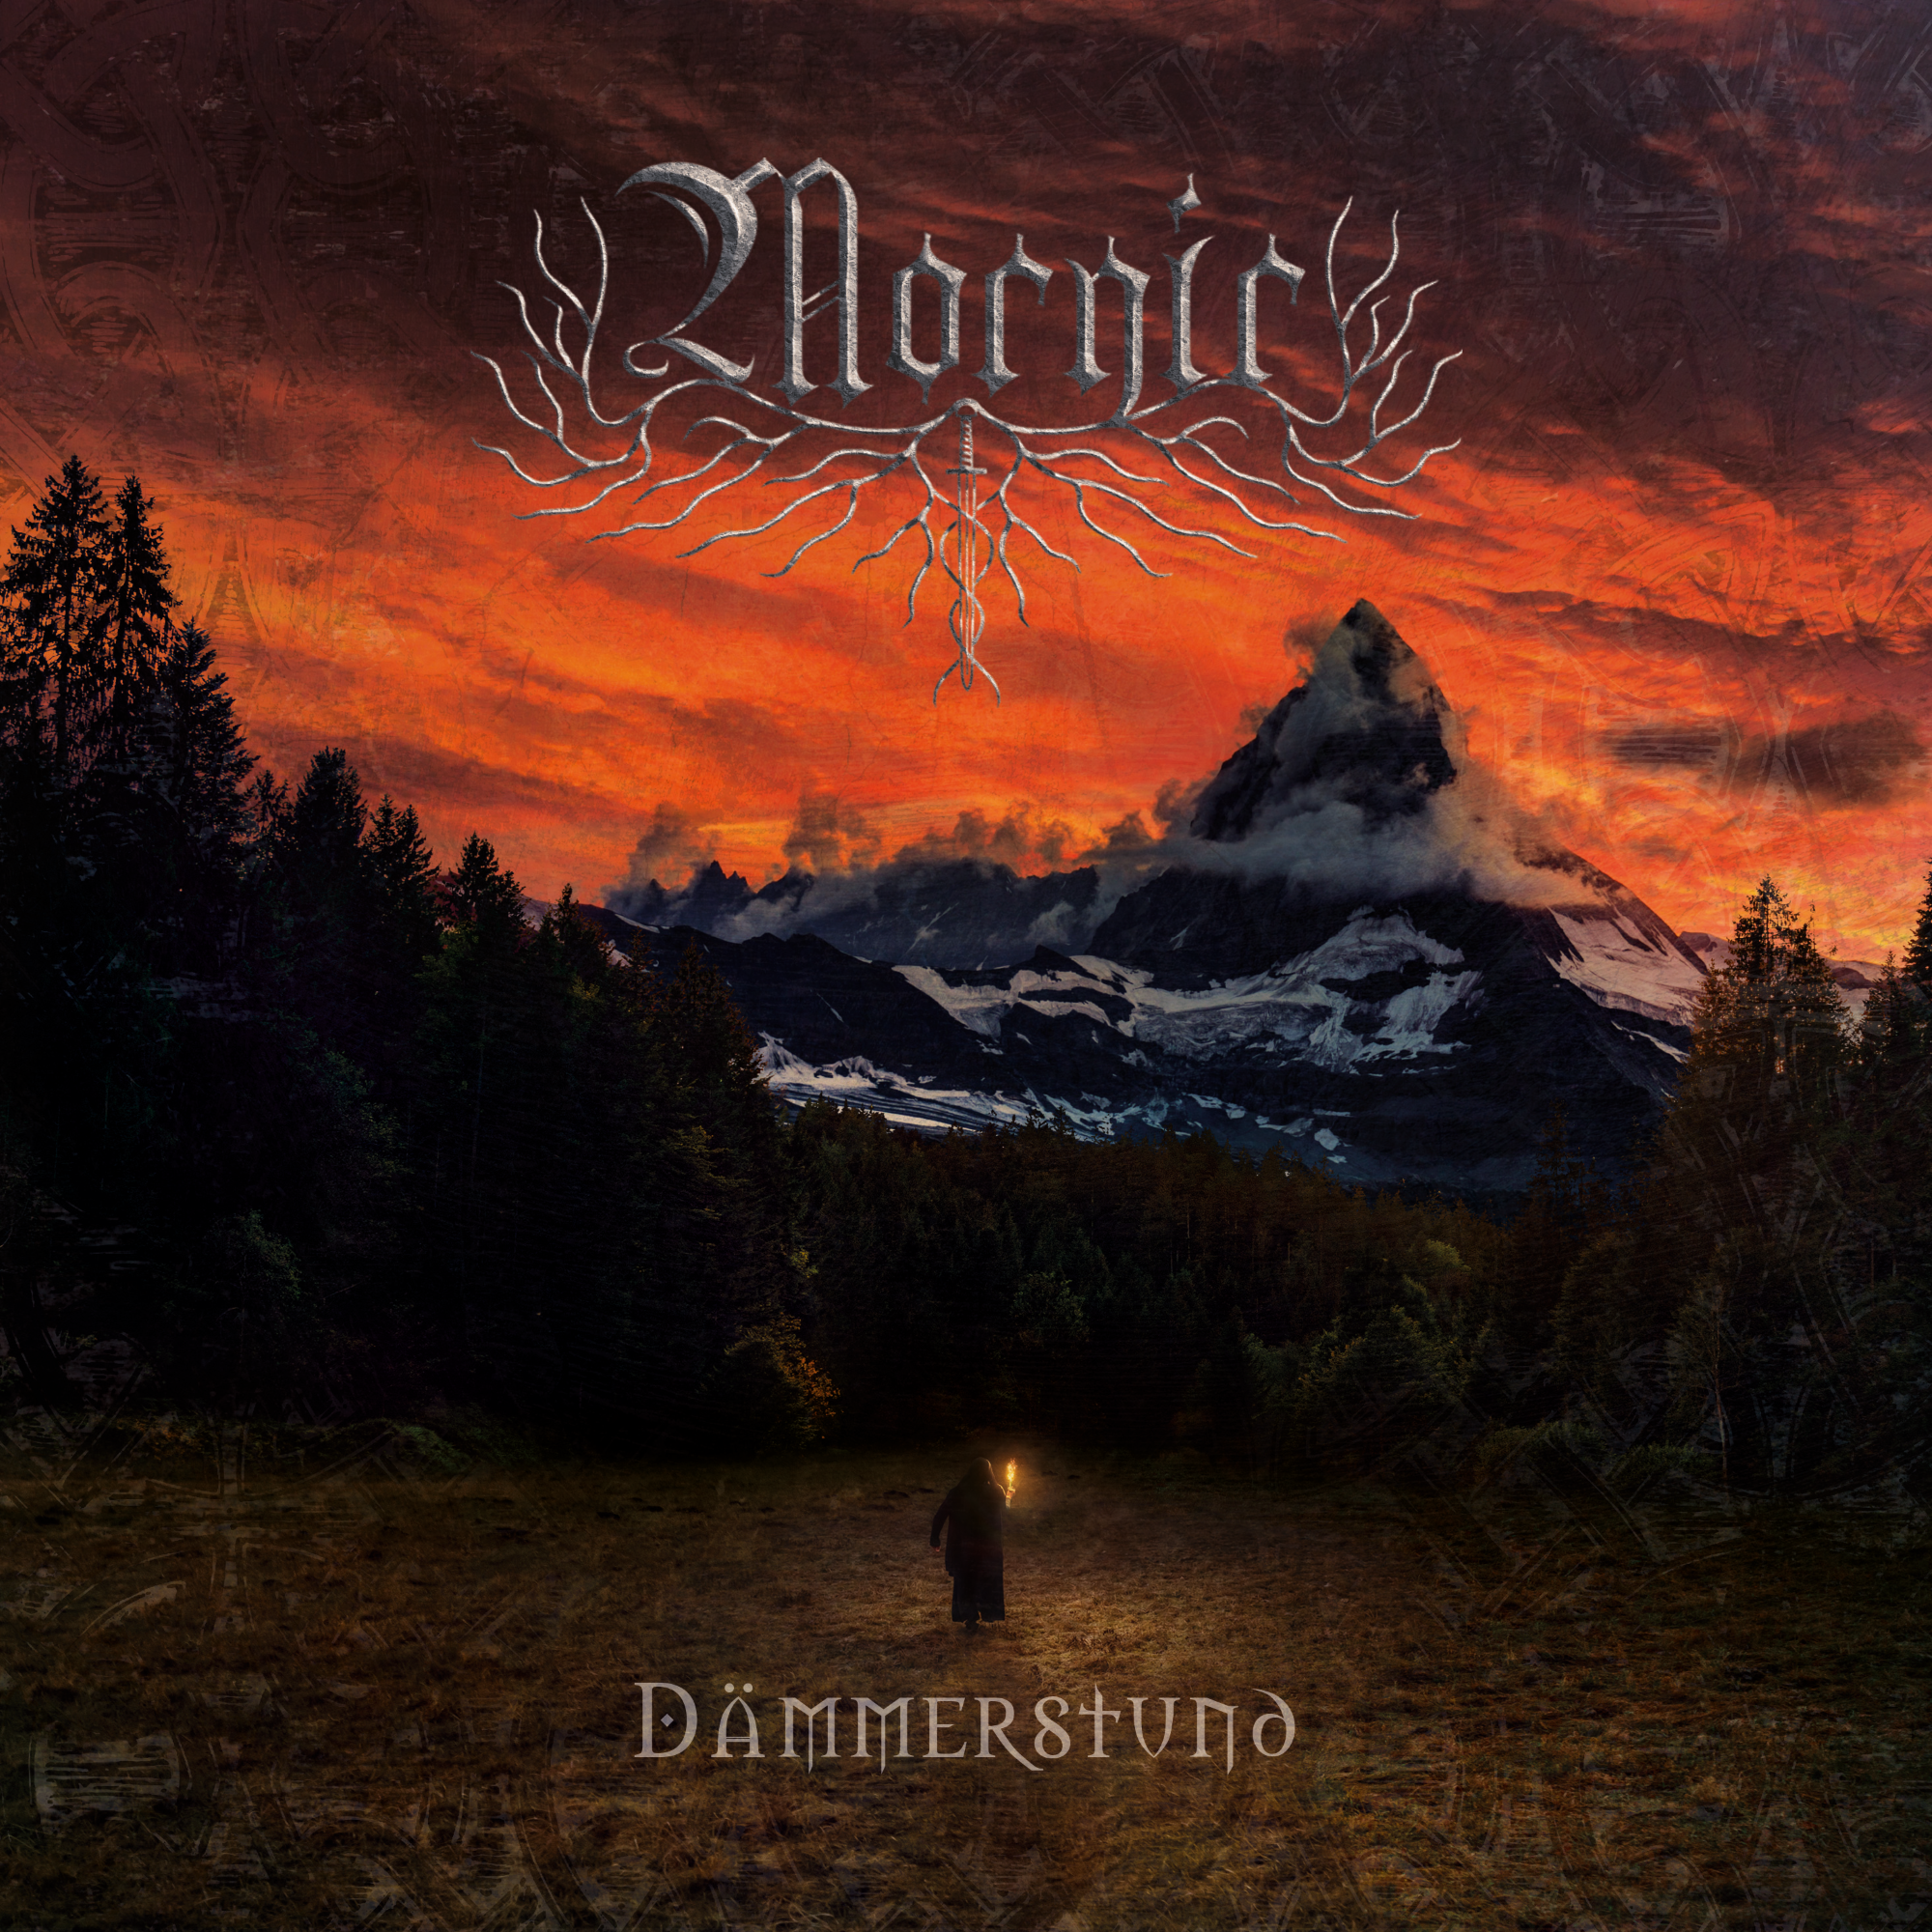 Review: Mornir Dämmerstund